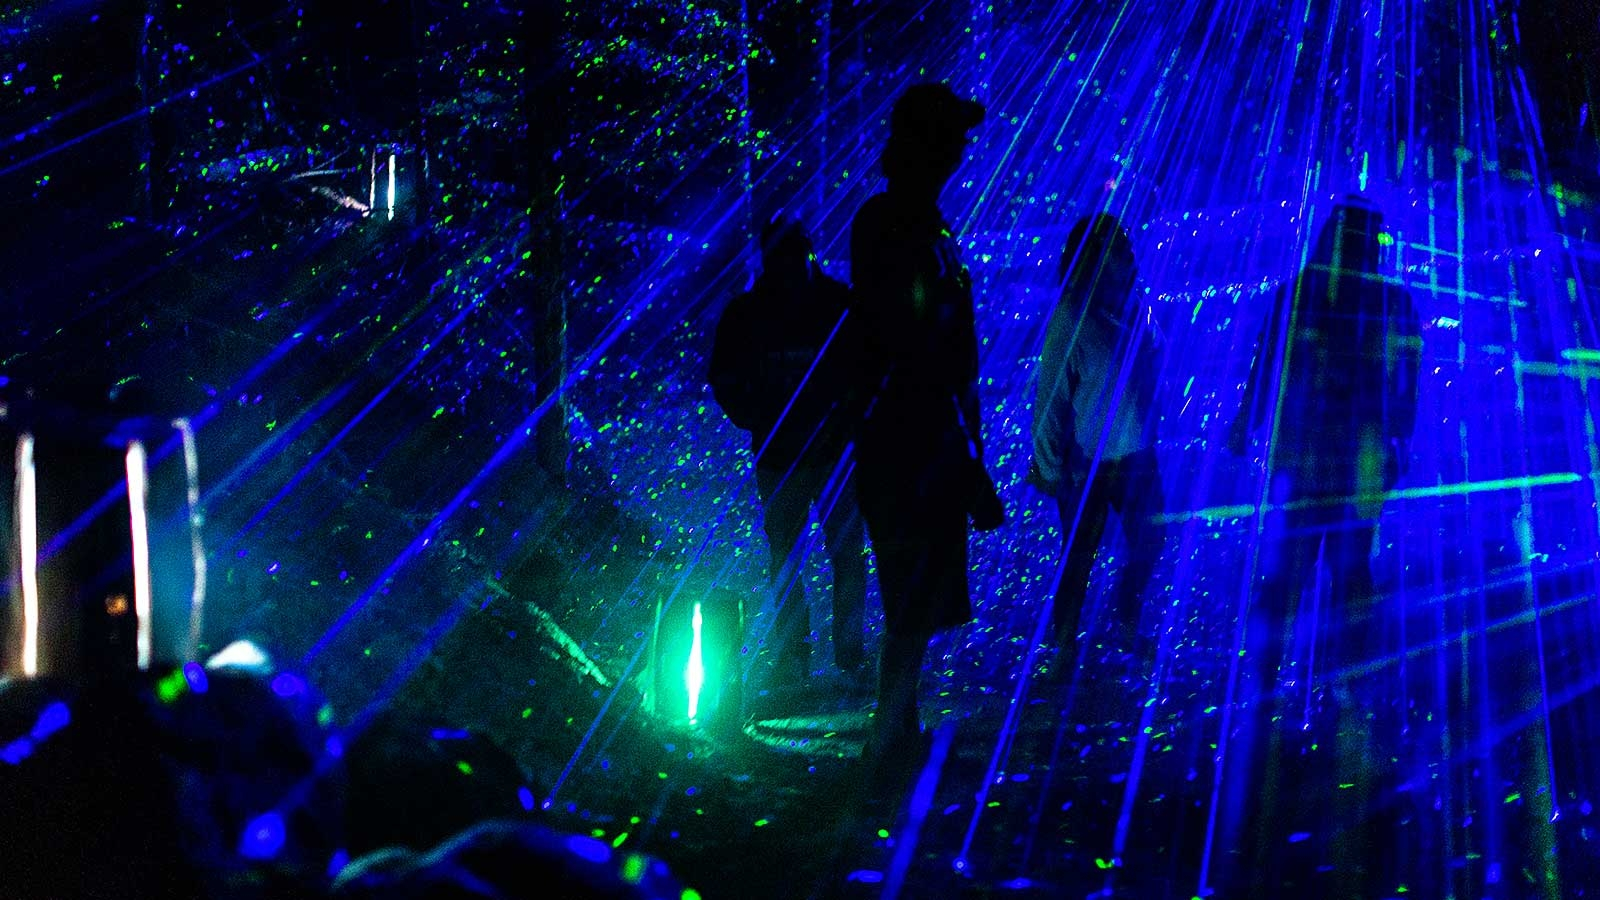 Four people standing in a green and blue light show